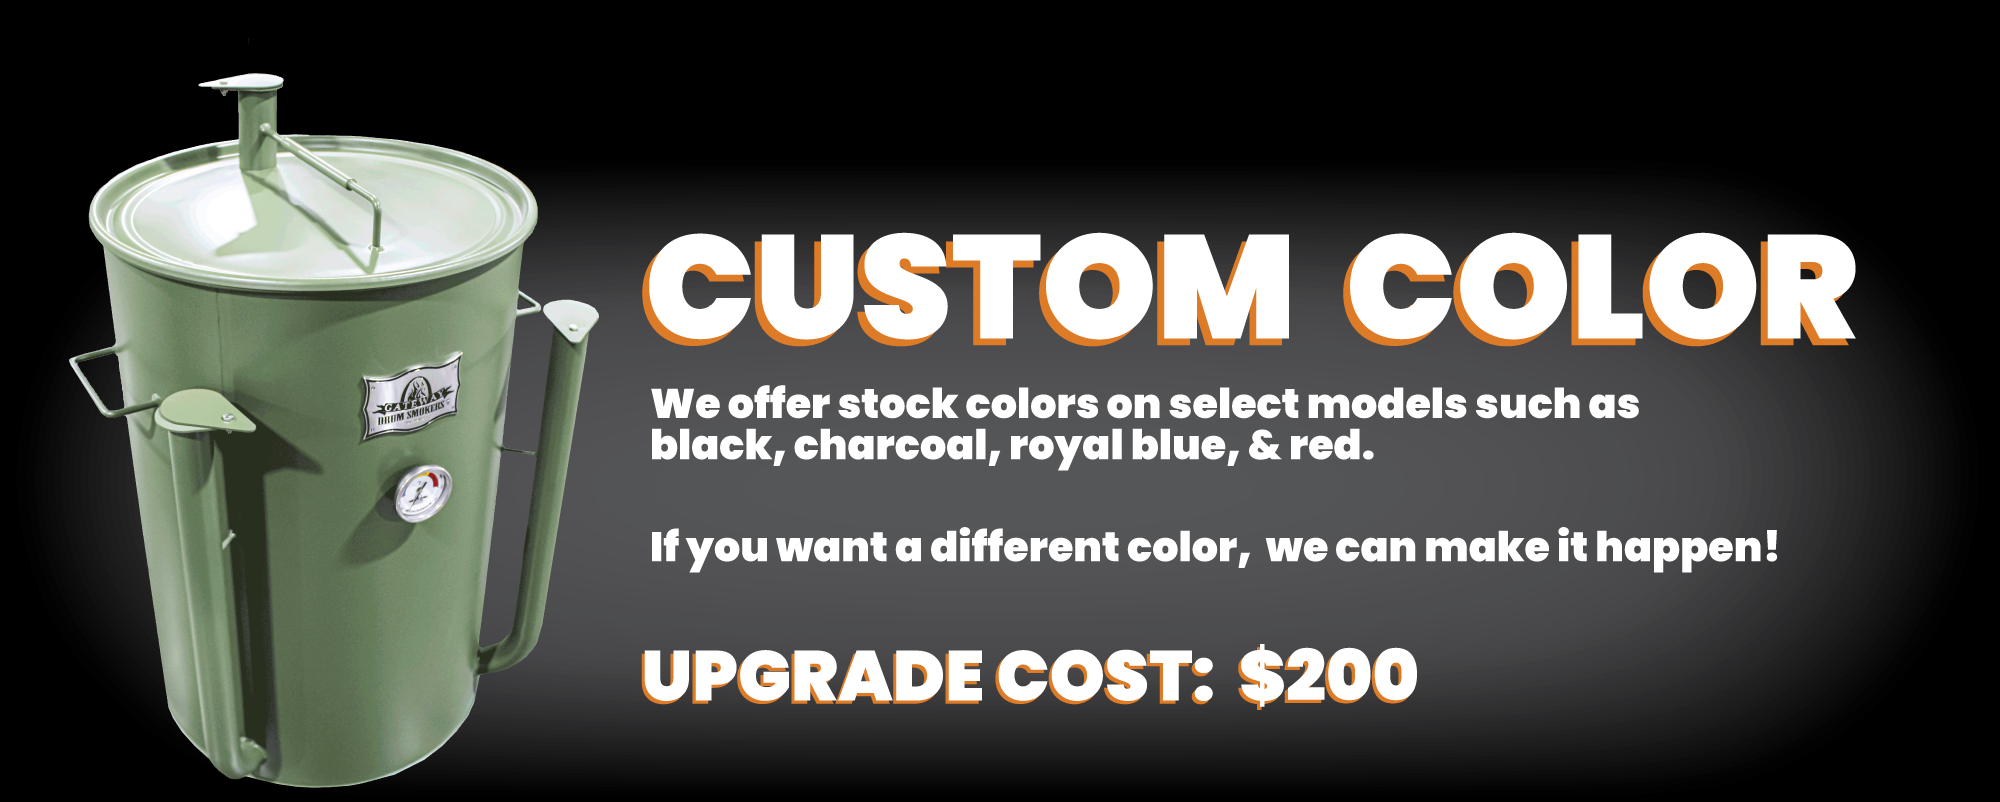 Custom Color: We offer stock colors on select models such as black, charcoal, royal blue, and red.If you want a different color, we can make it happen! Upgrade Cost:$200